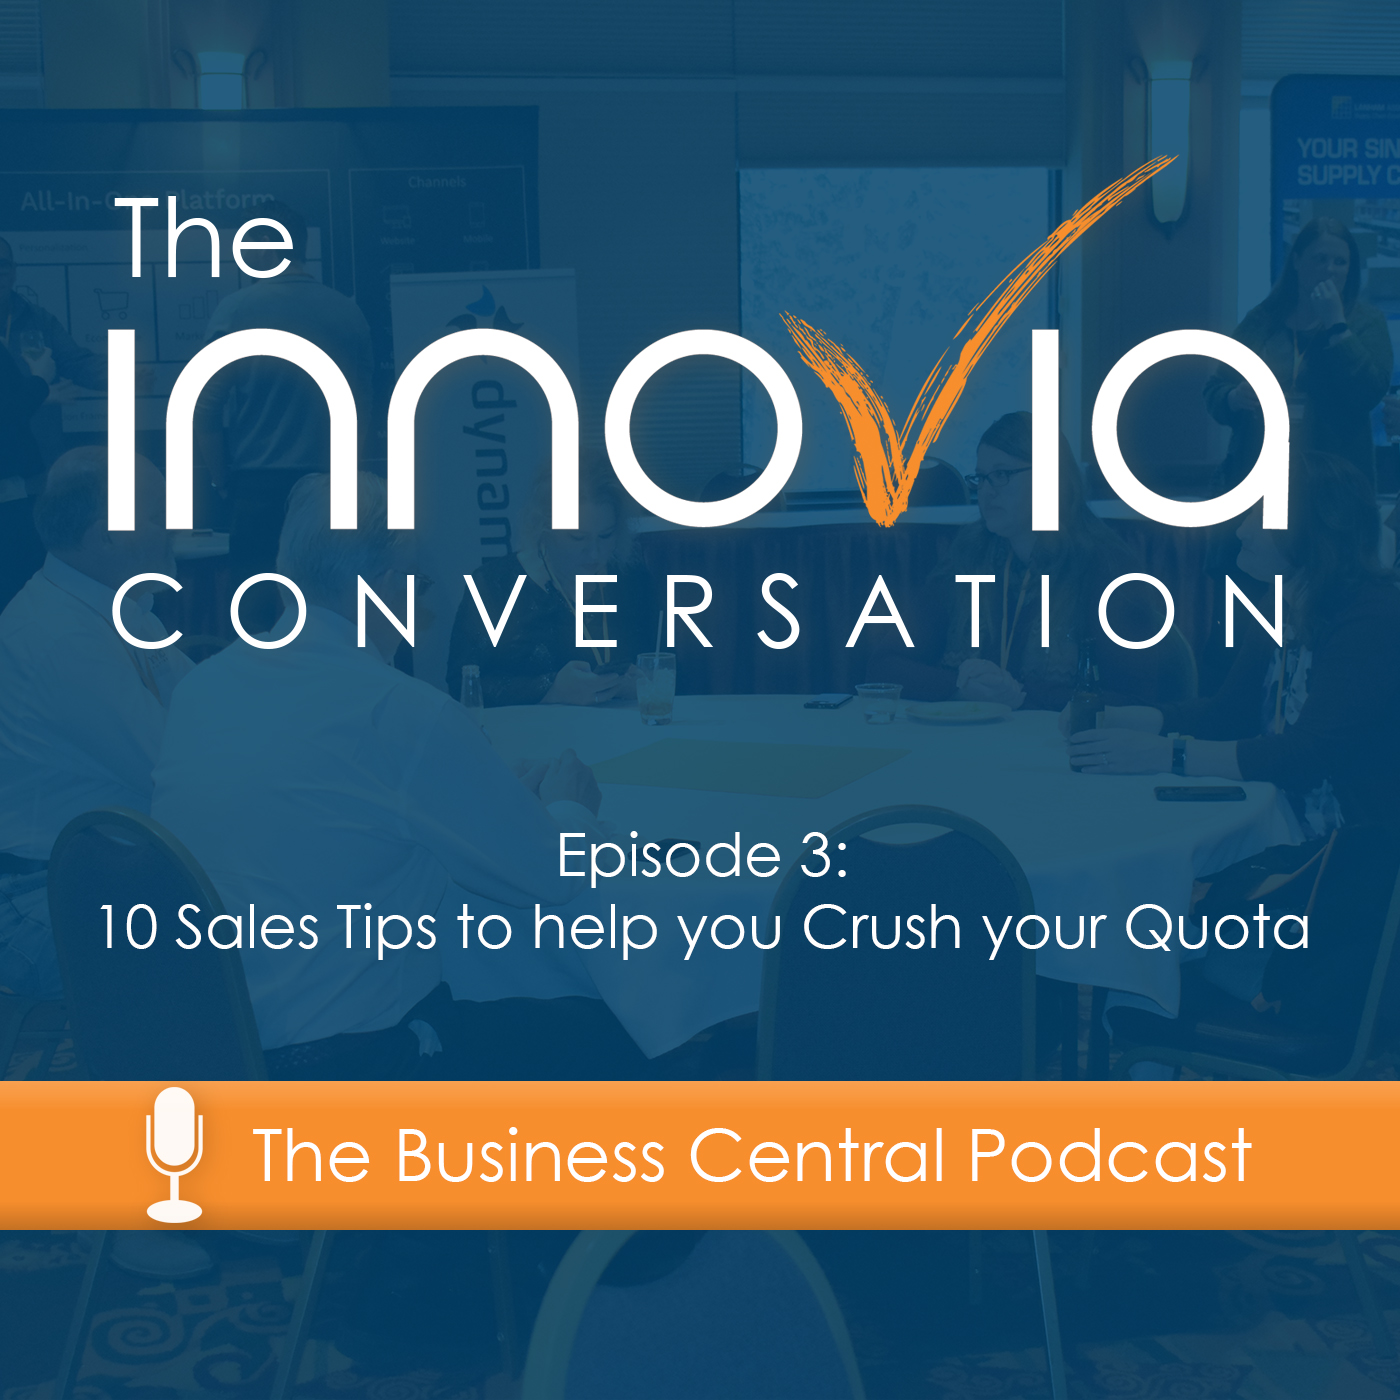 10 Sales Tips to help you Crush your Quota